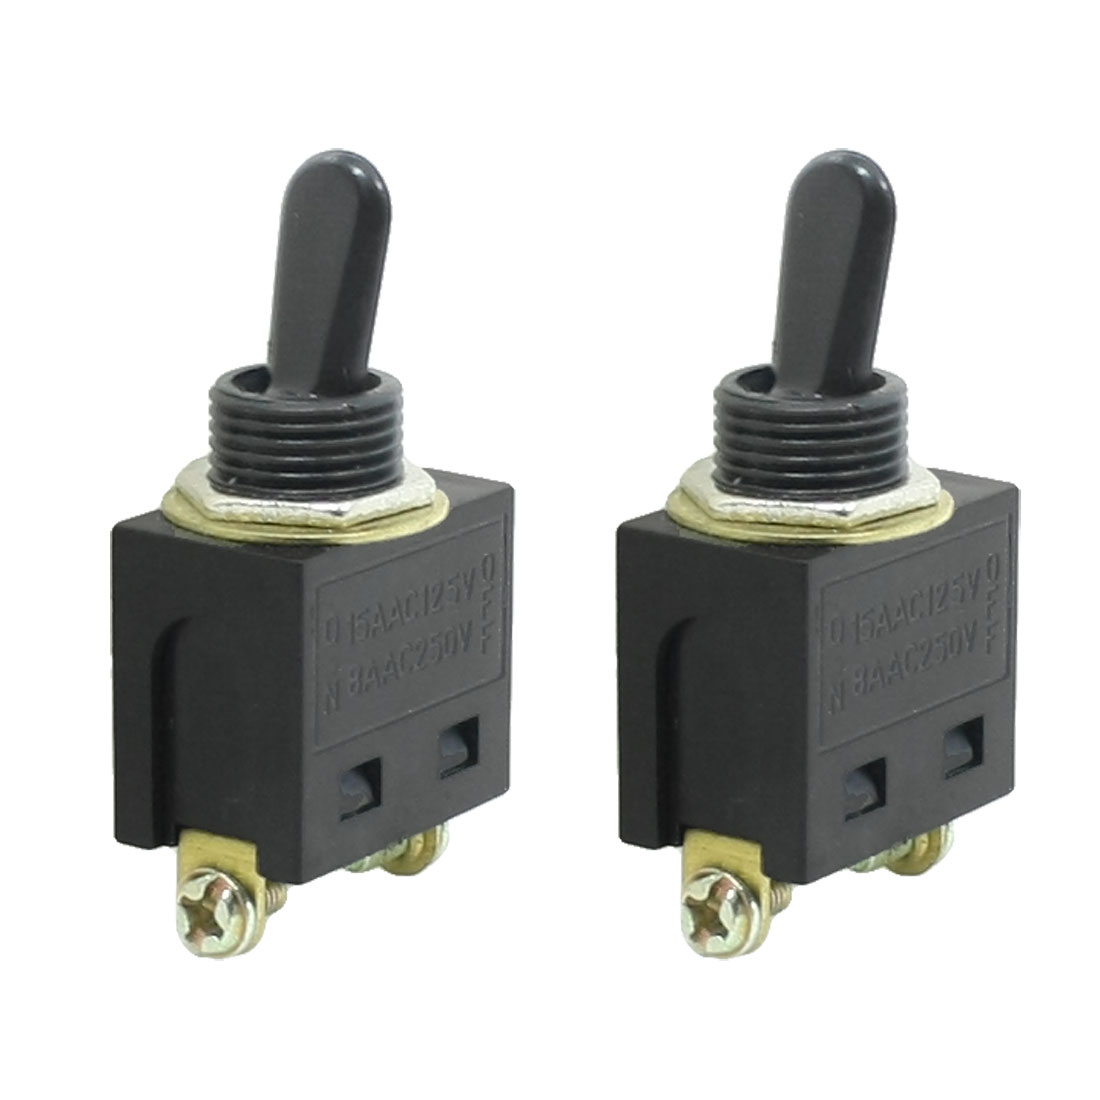 AC 250V/8A 125V/15A 2 Terminal On-Off 2 Positions SPST Toggle Switch Pair